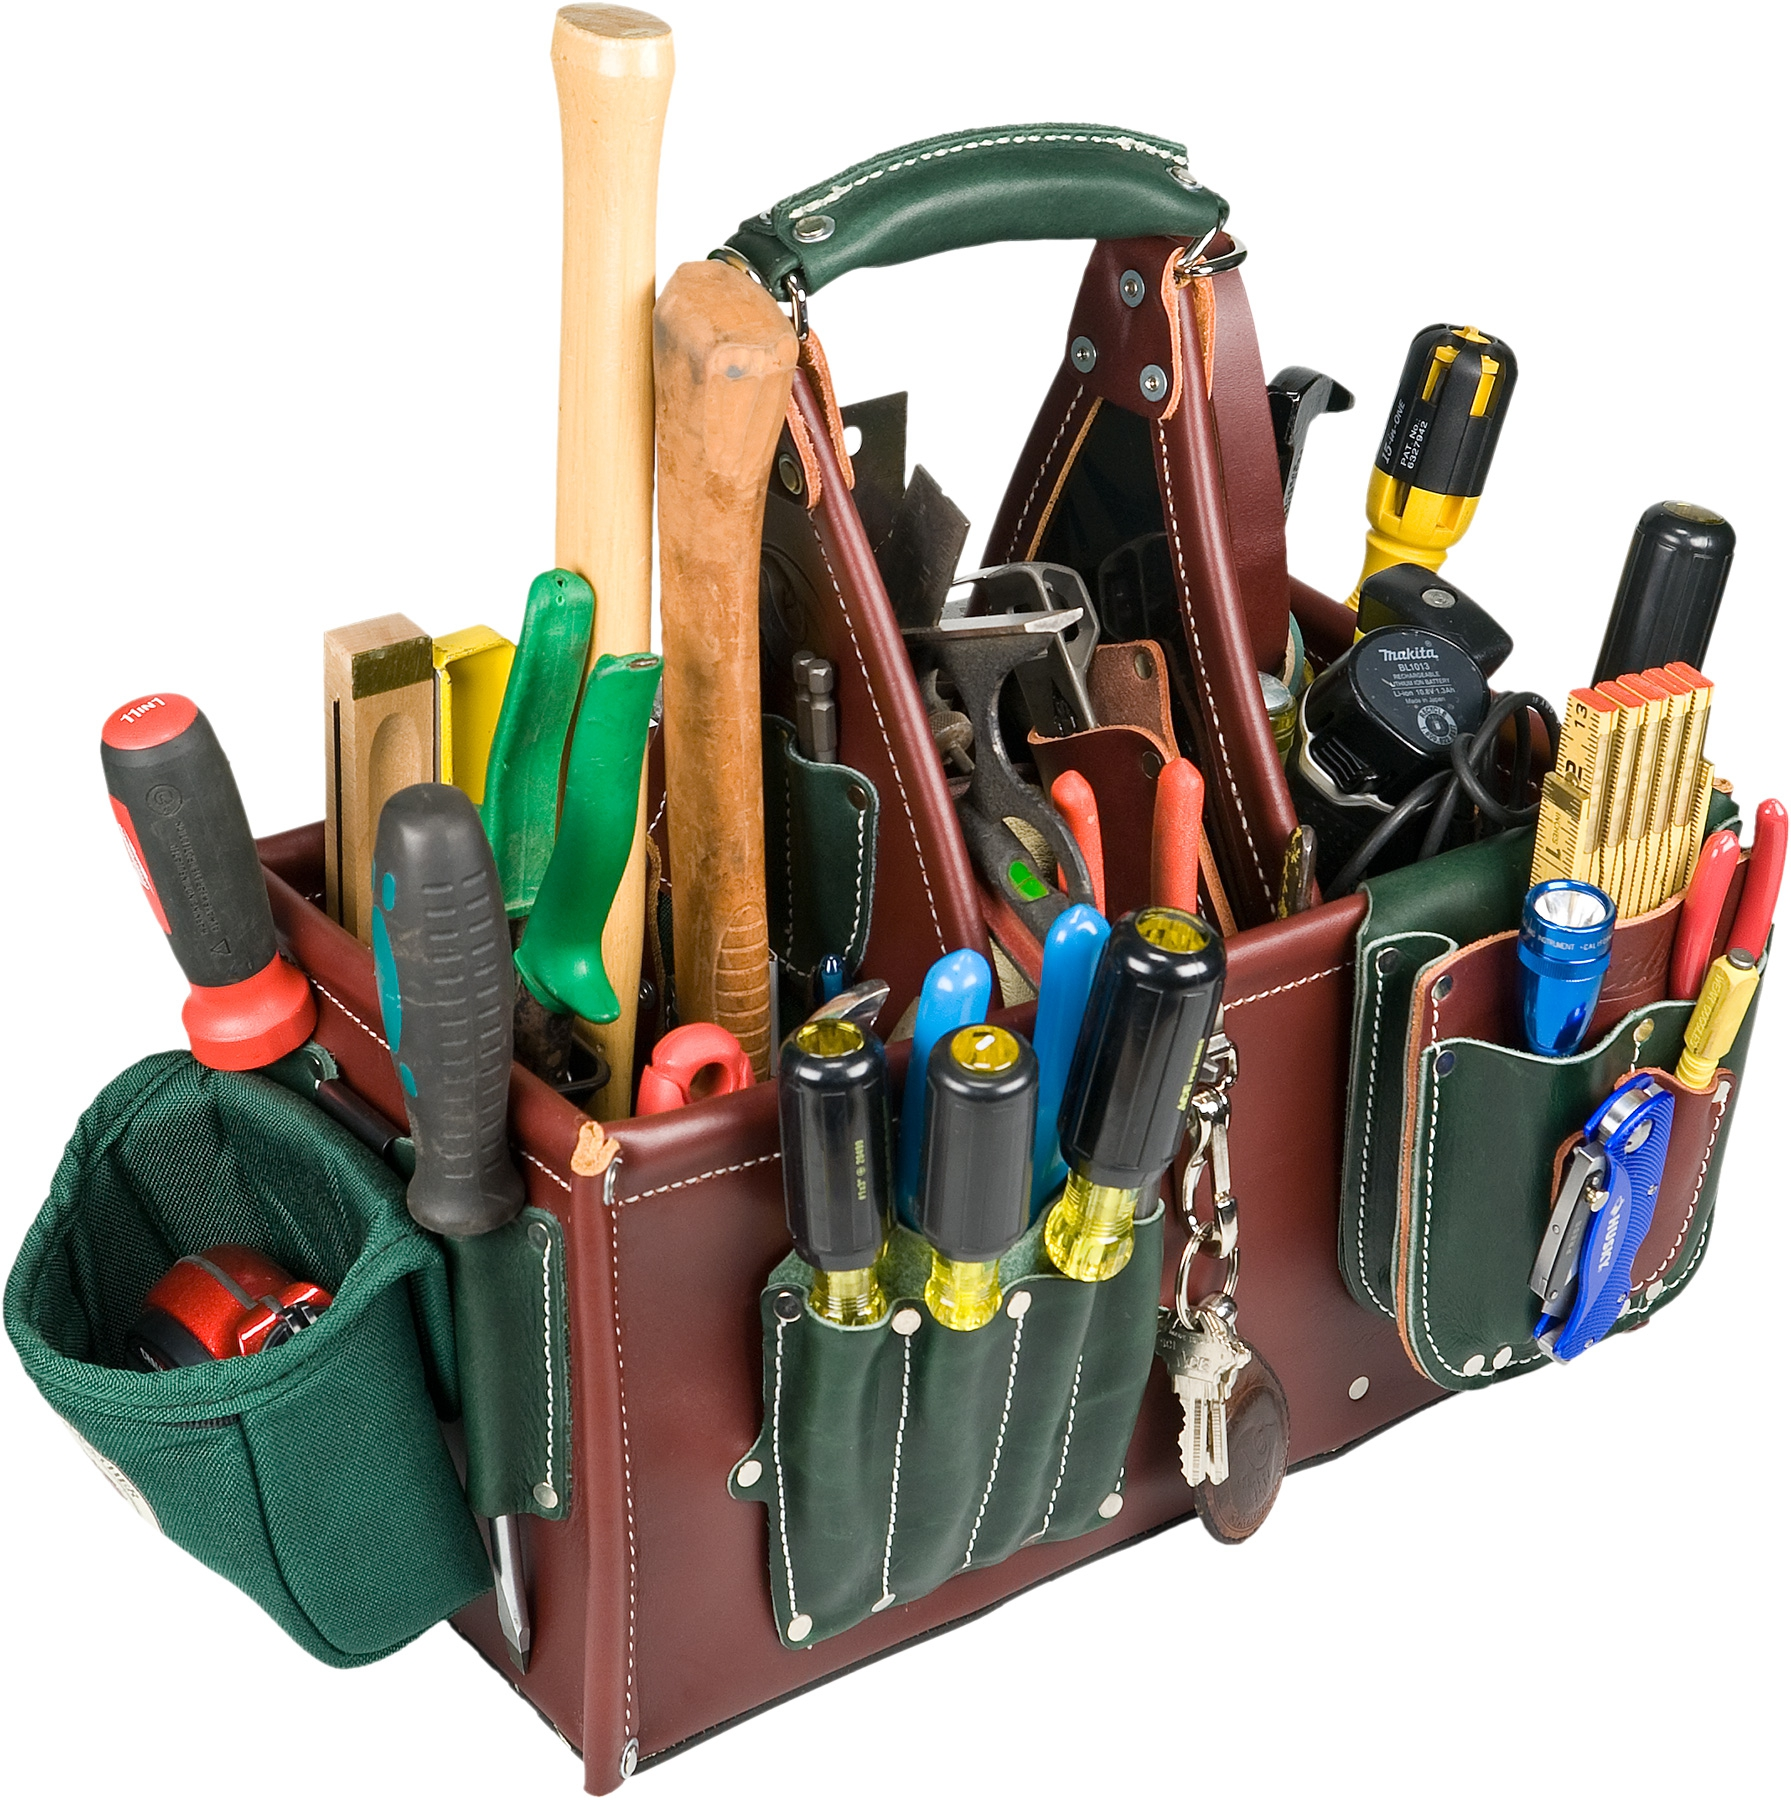 Specialty Tool Bags & Organizers